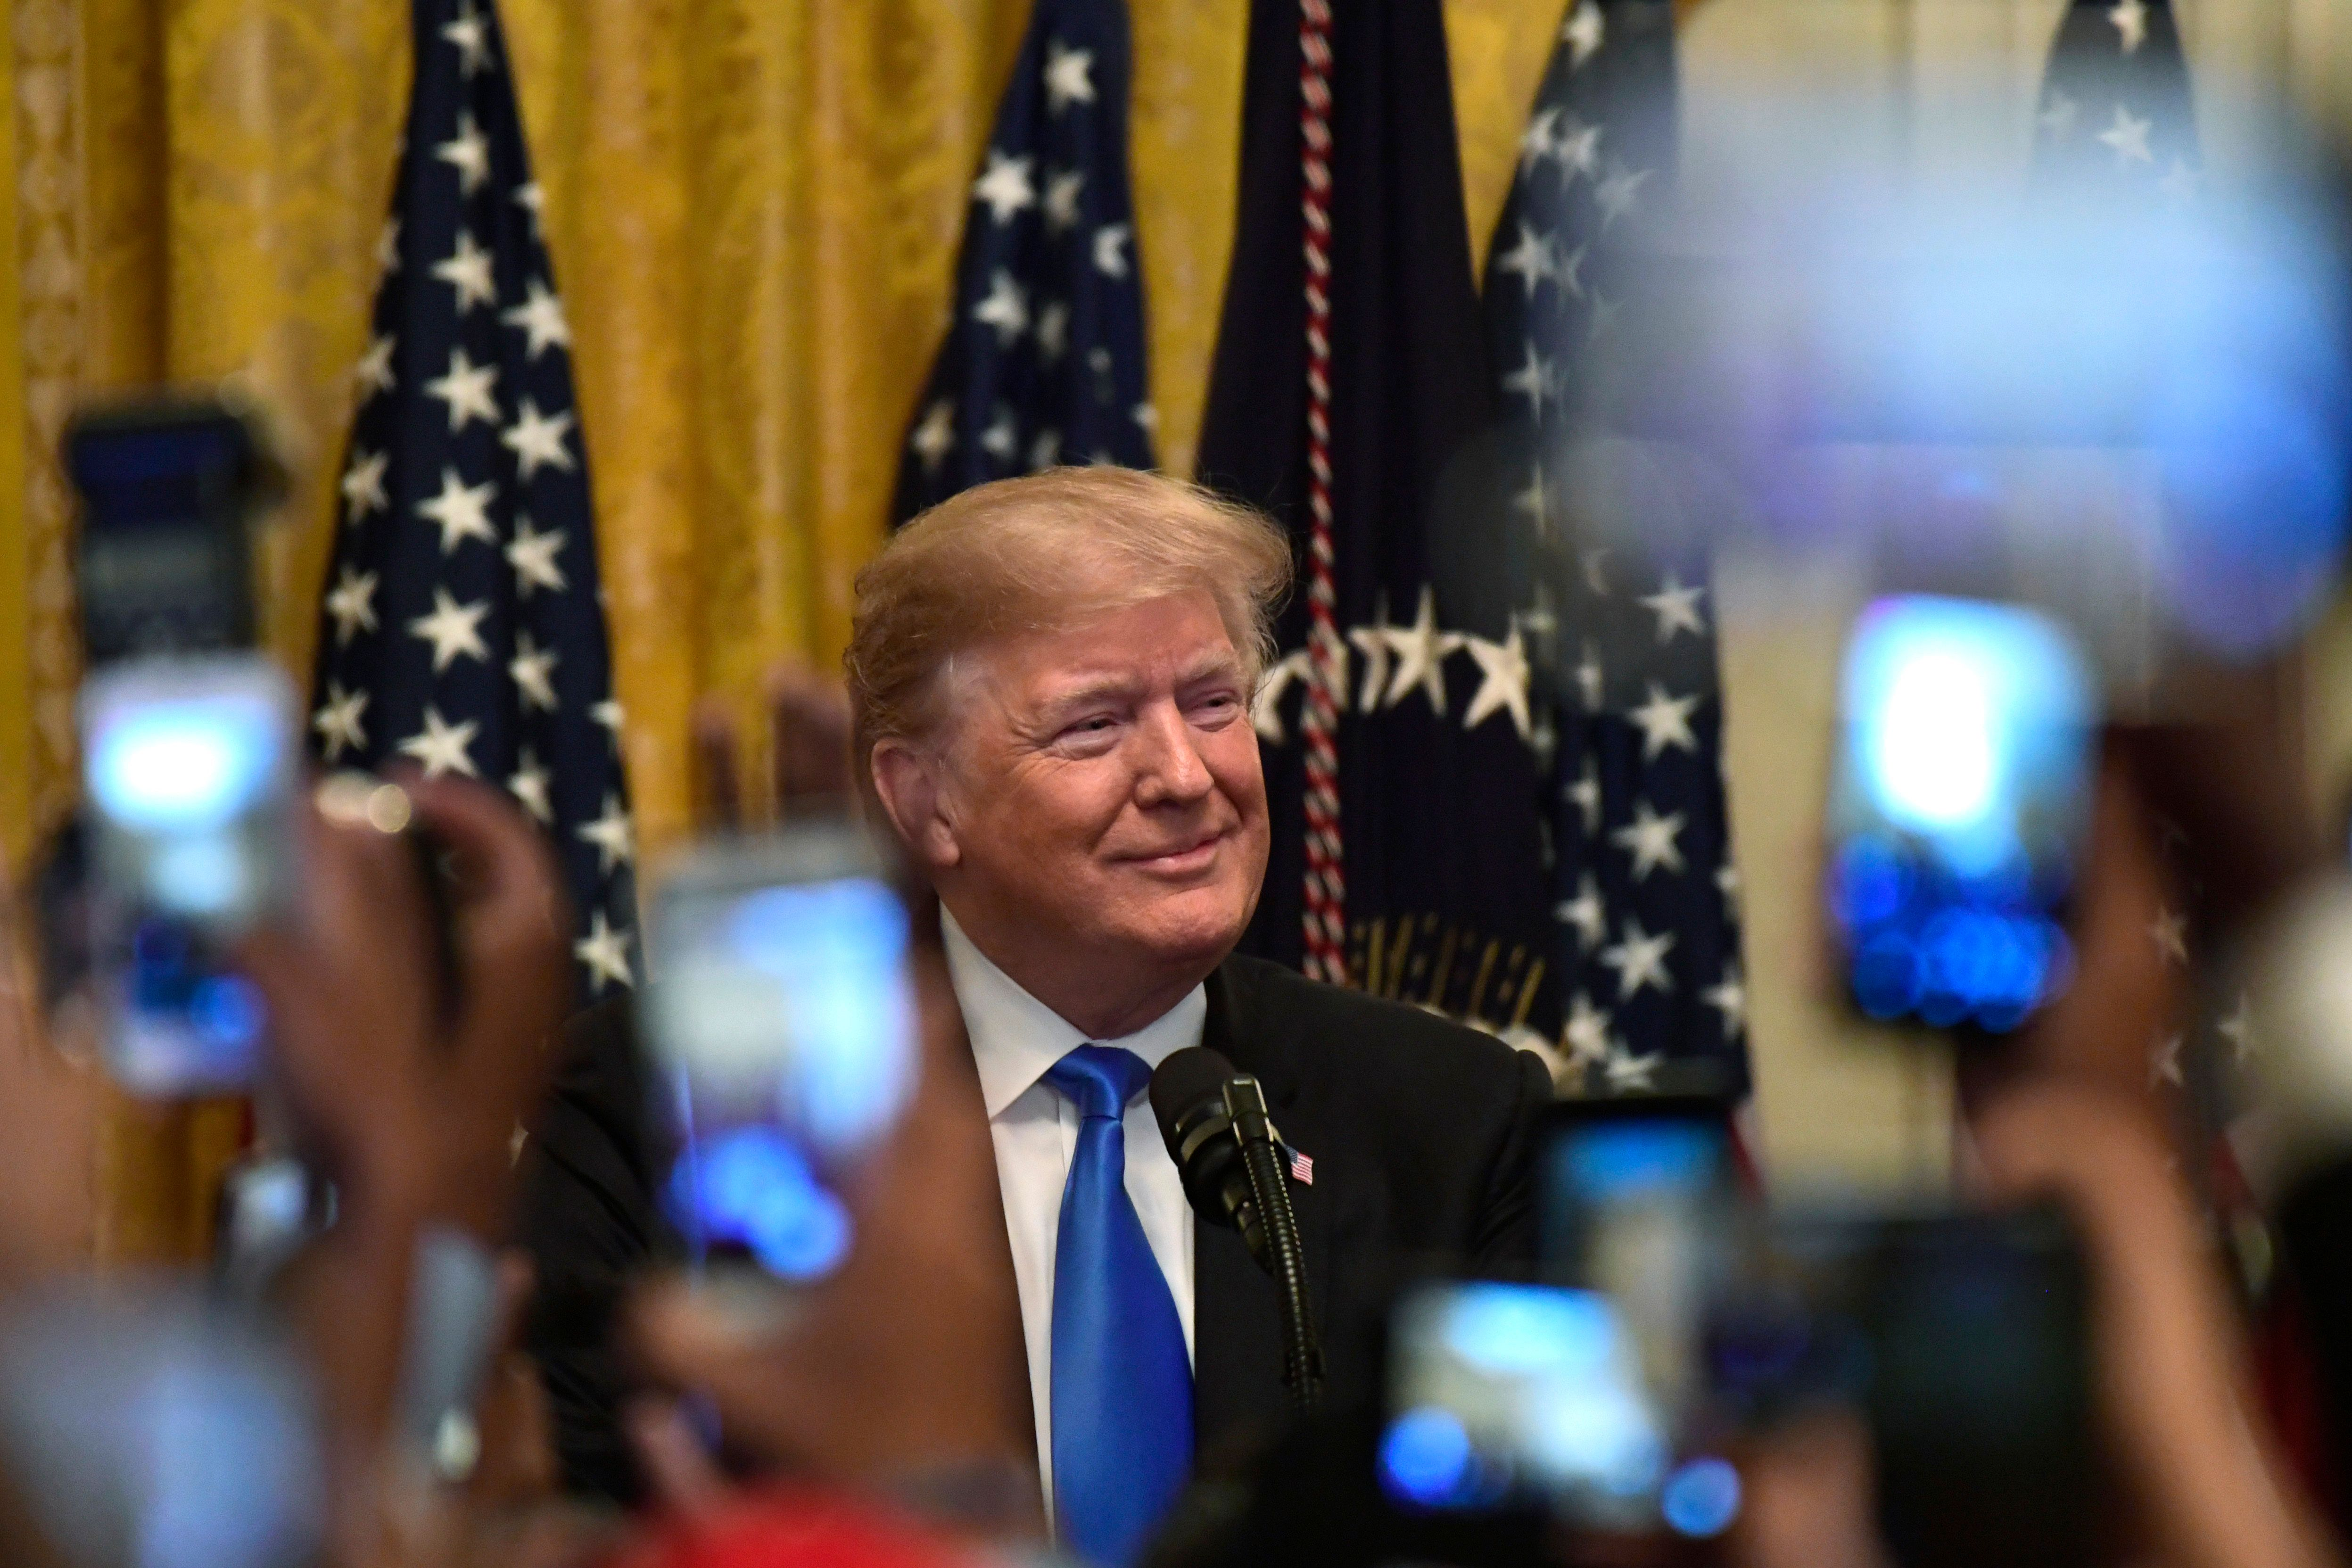 President Donald Trump speaks at the 2018 Young Black Leadership Summit in the East Room of the White House in Washington, Friday, Oct. 26, 2018. (AP Photo/Susan Walsh)